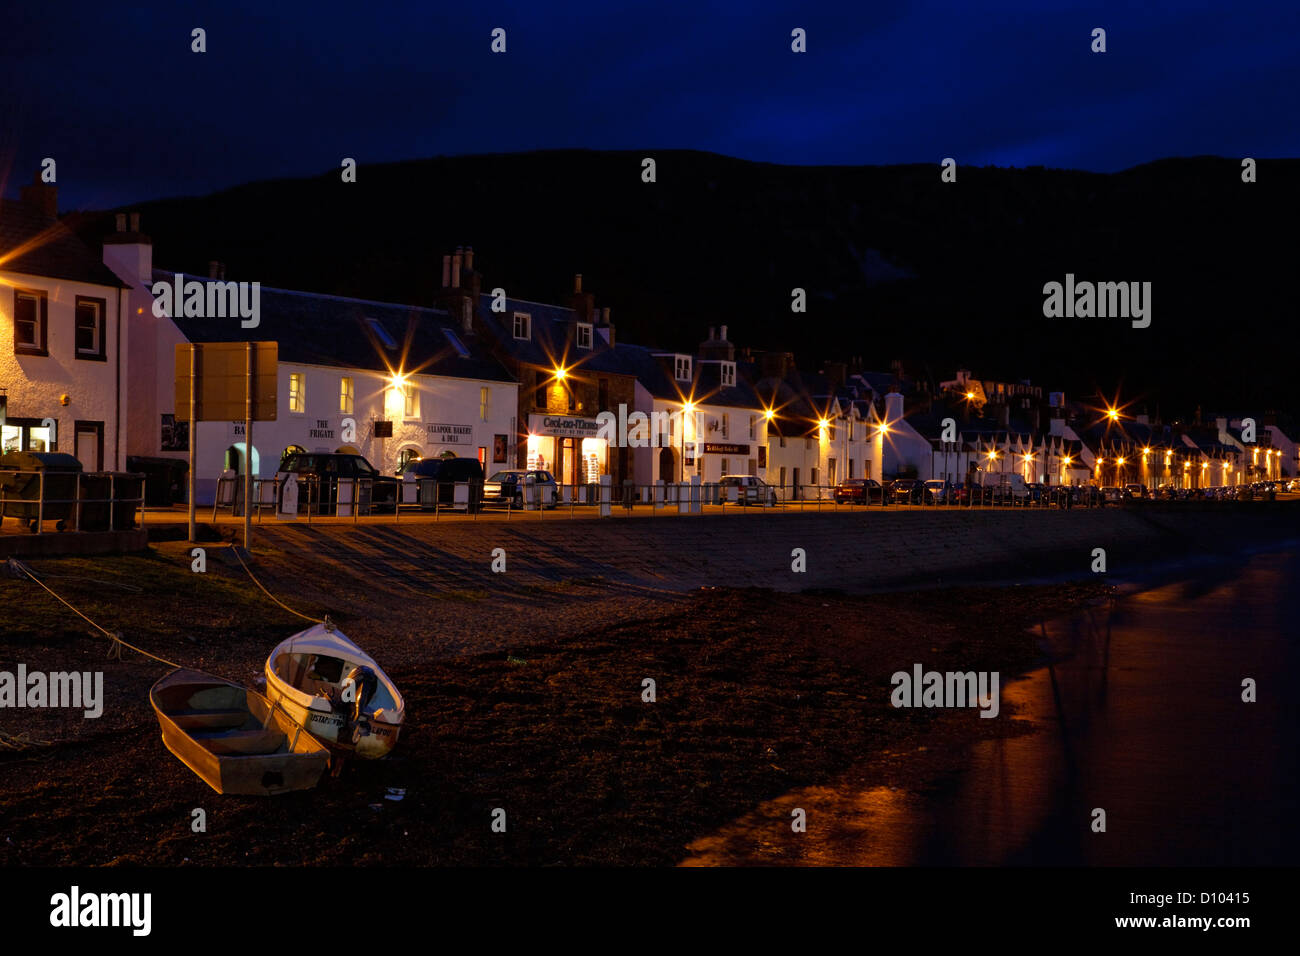 Ullapool harbour front at night. - Stock Image